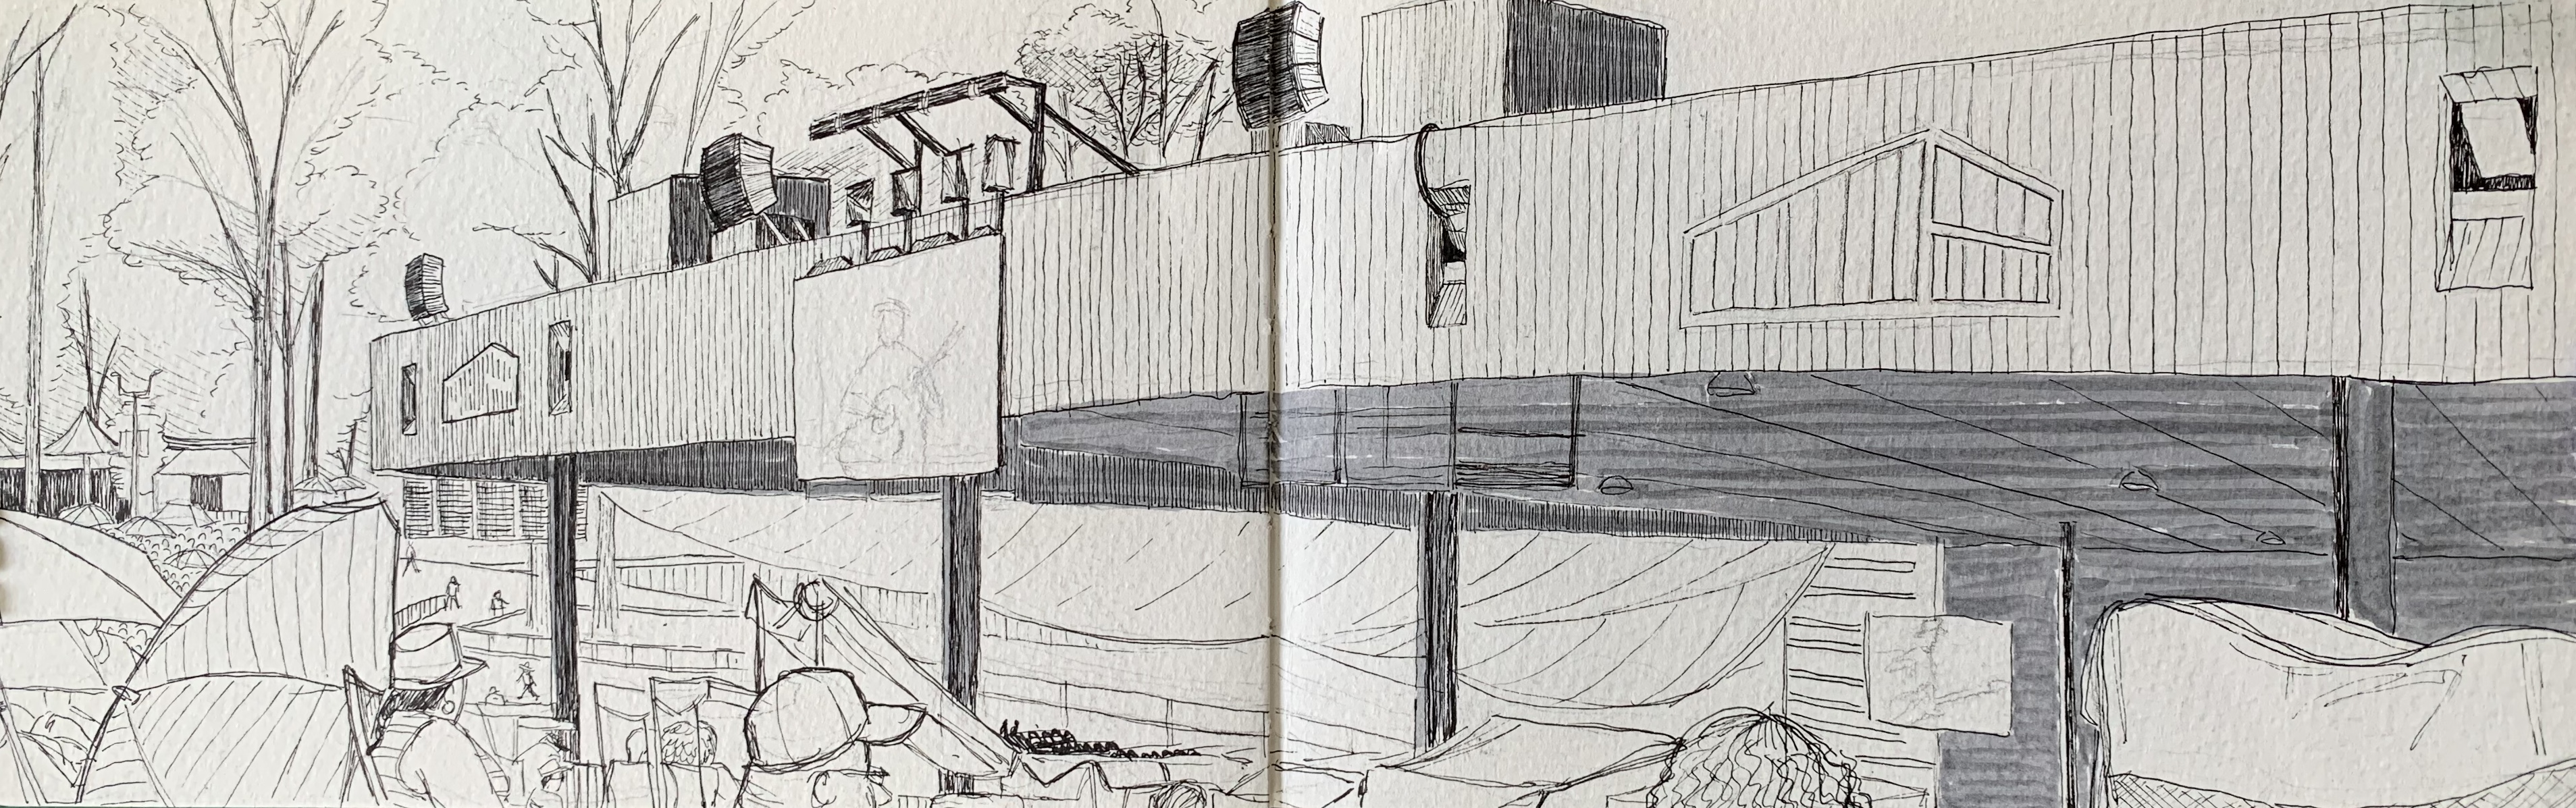 a sketch of a jazz show at merriweather post pavilion by alleanna harris